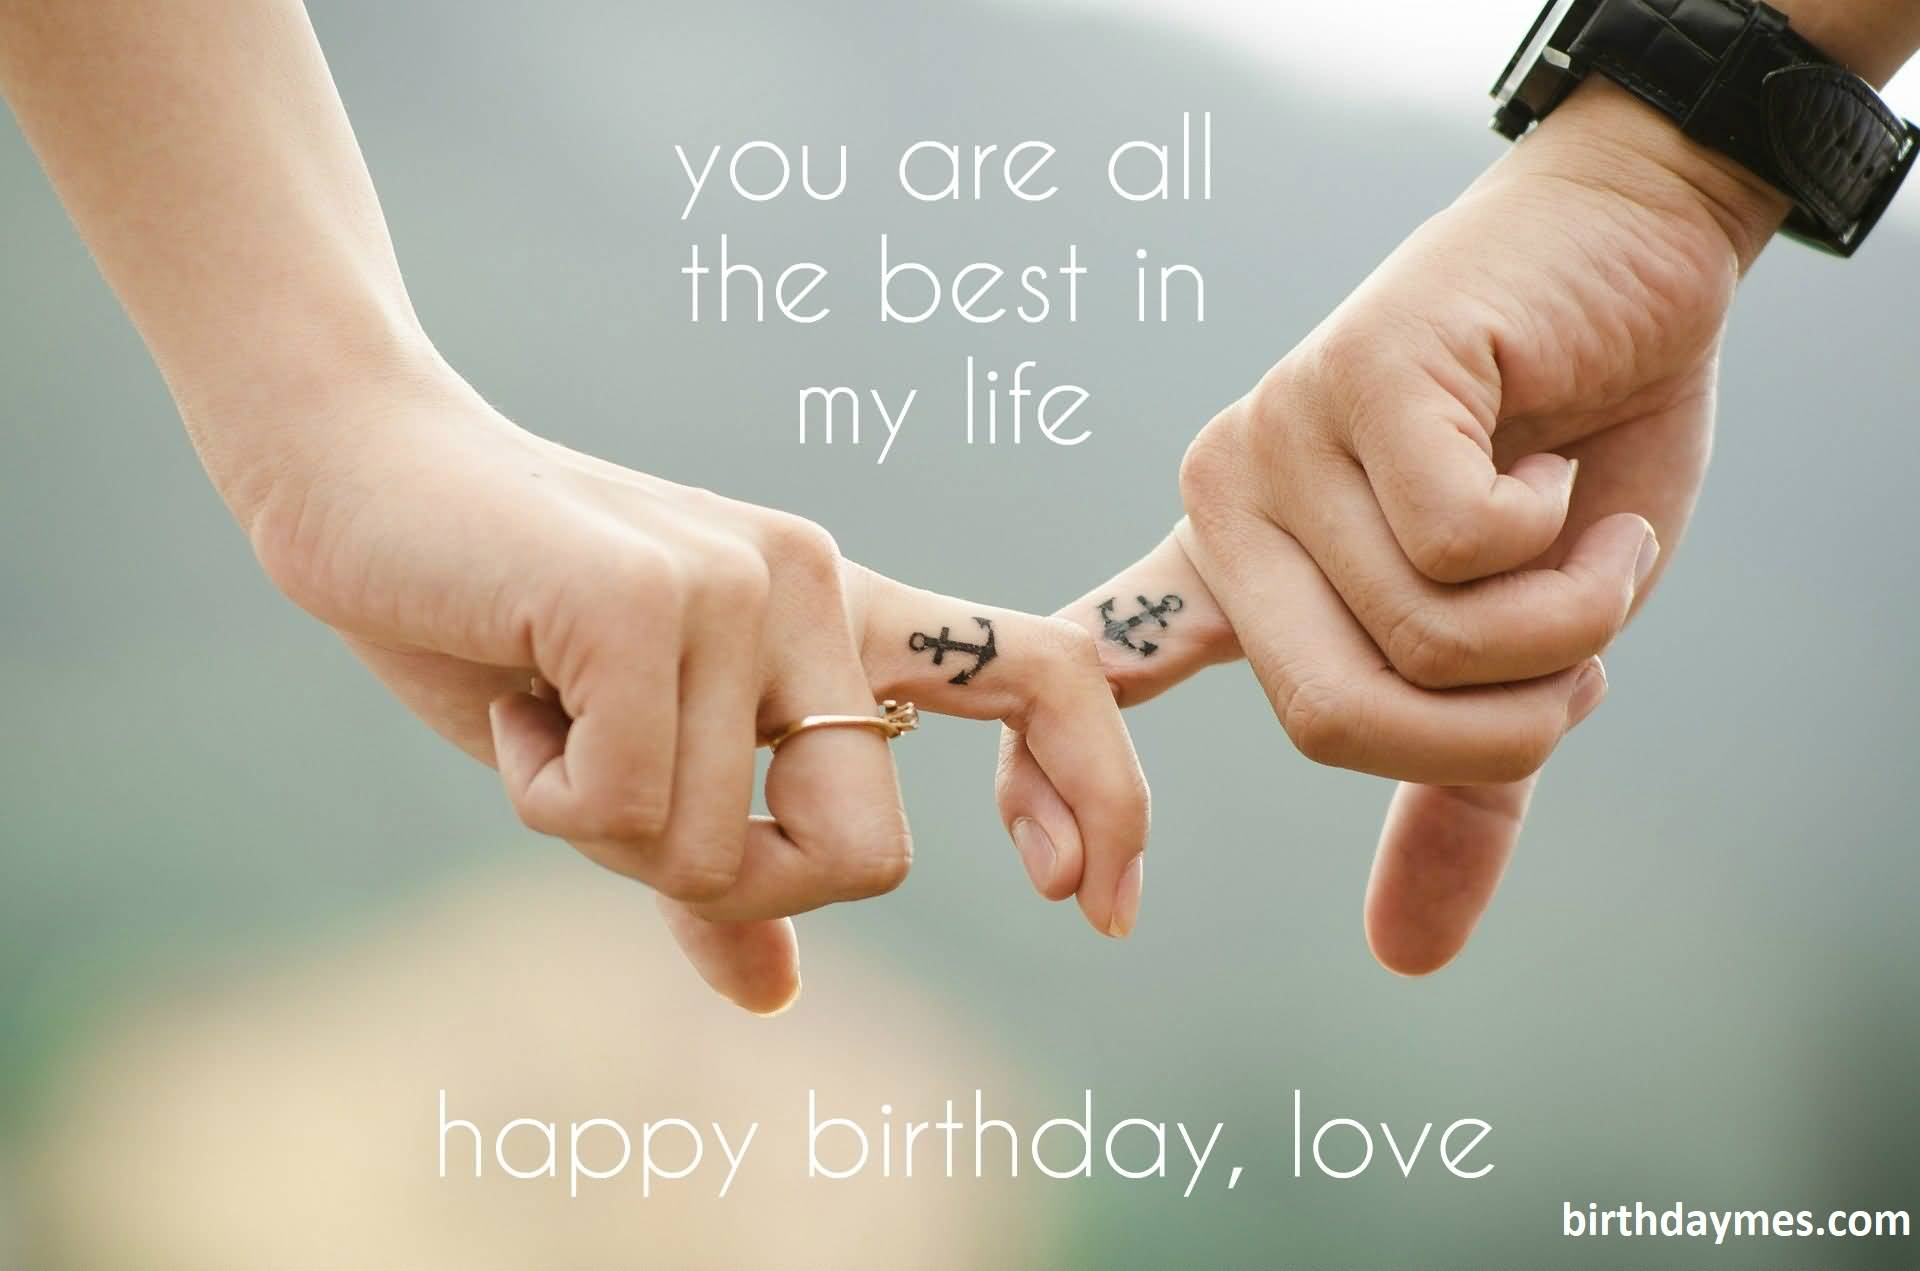 Beautiful birthday images wishes to my love Husband from wife